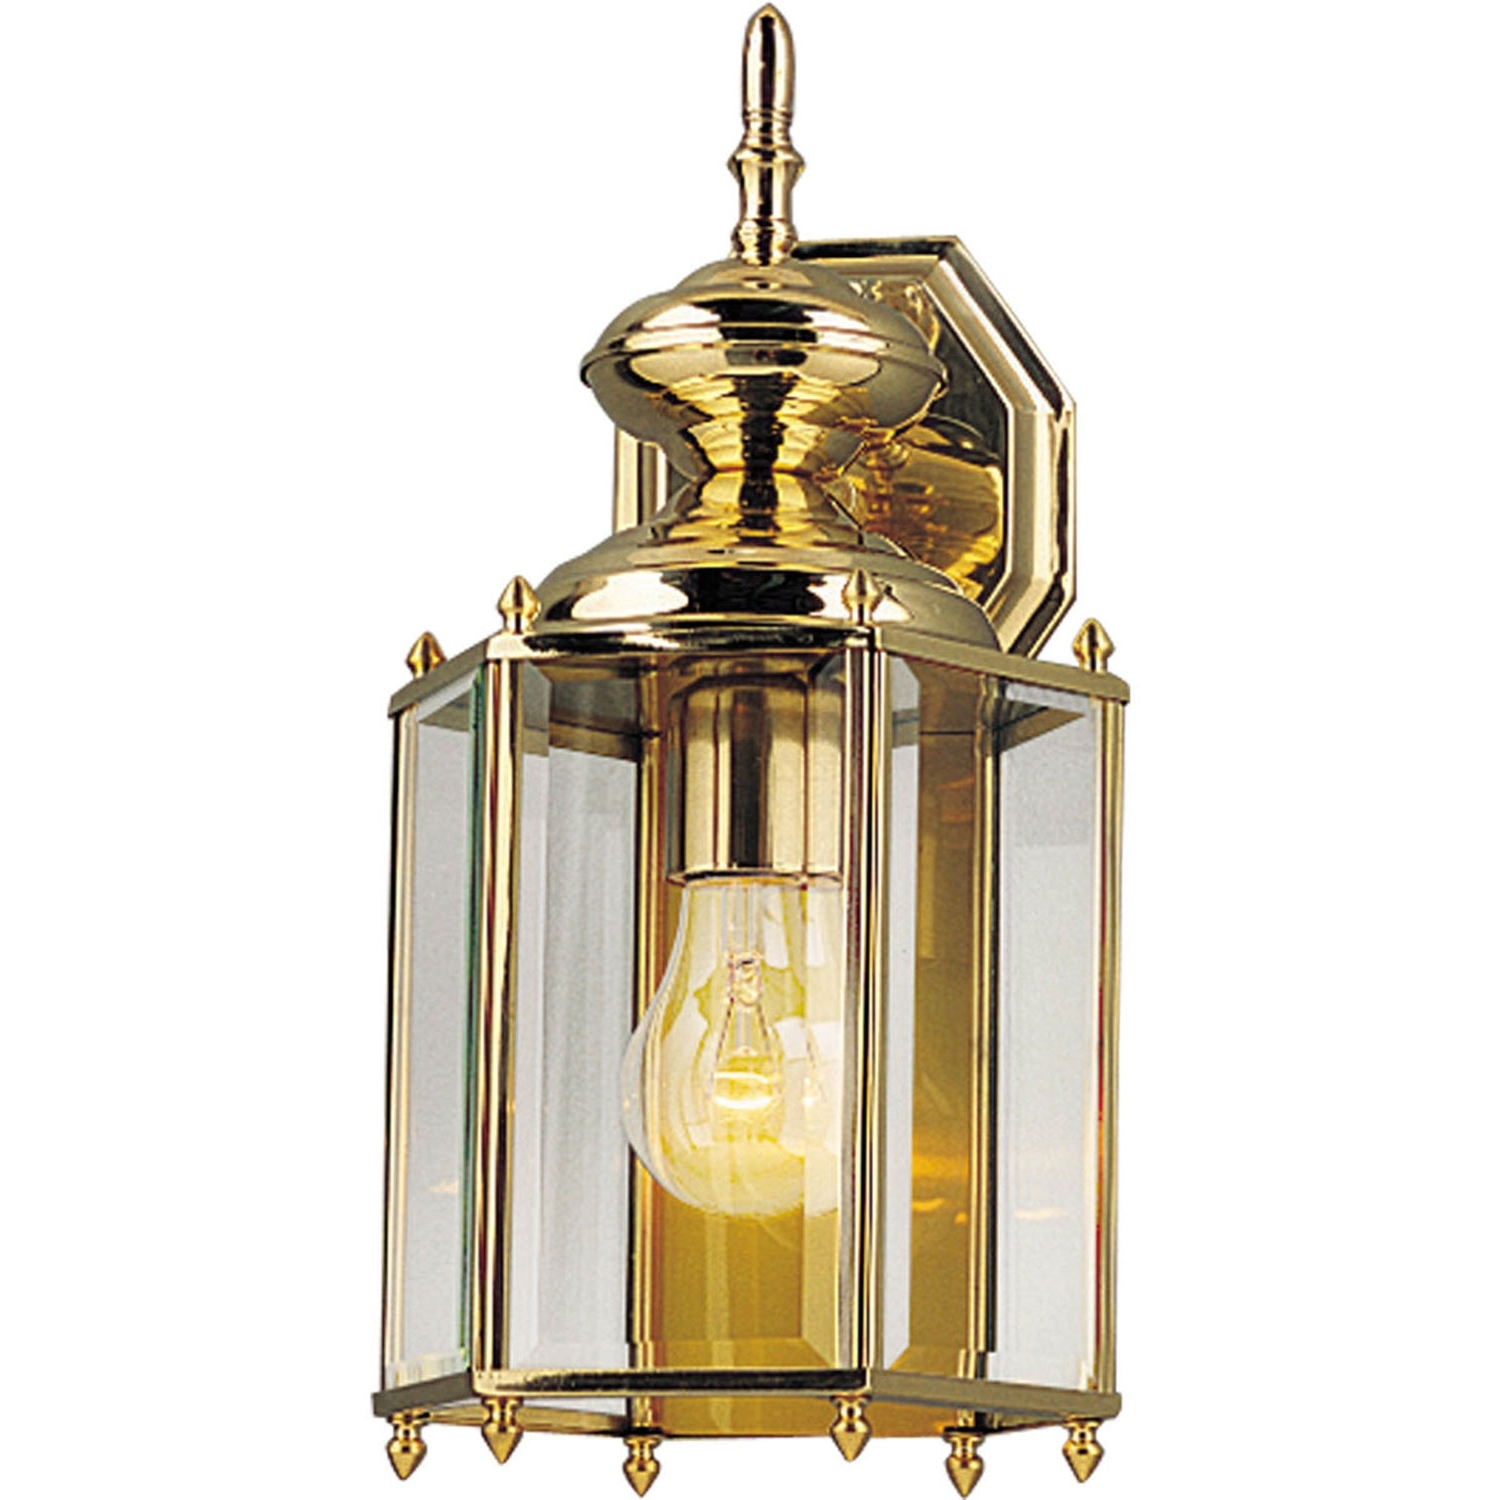 Brass Outdoor Lanterns With Regard To Well Known Progress Lighting P5832 10: Brassguard Lanterns Polished Brass One (Gallery 9 of 20)